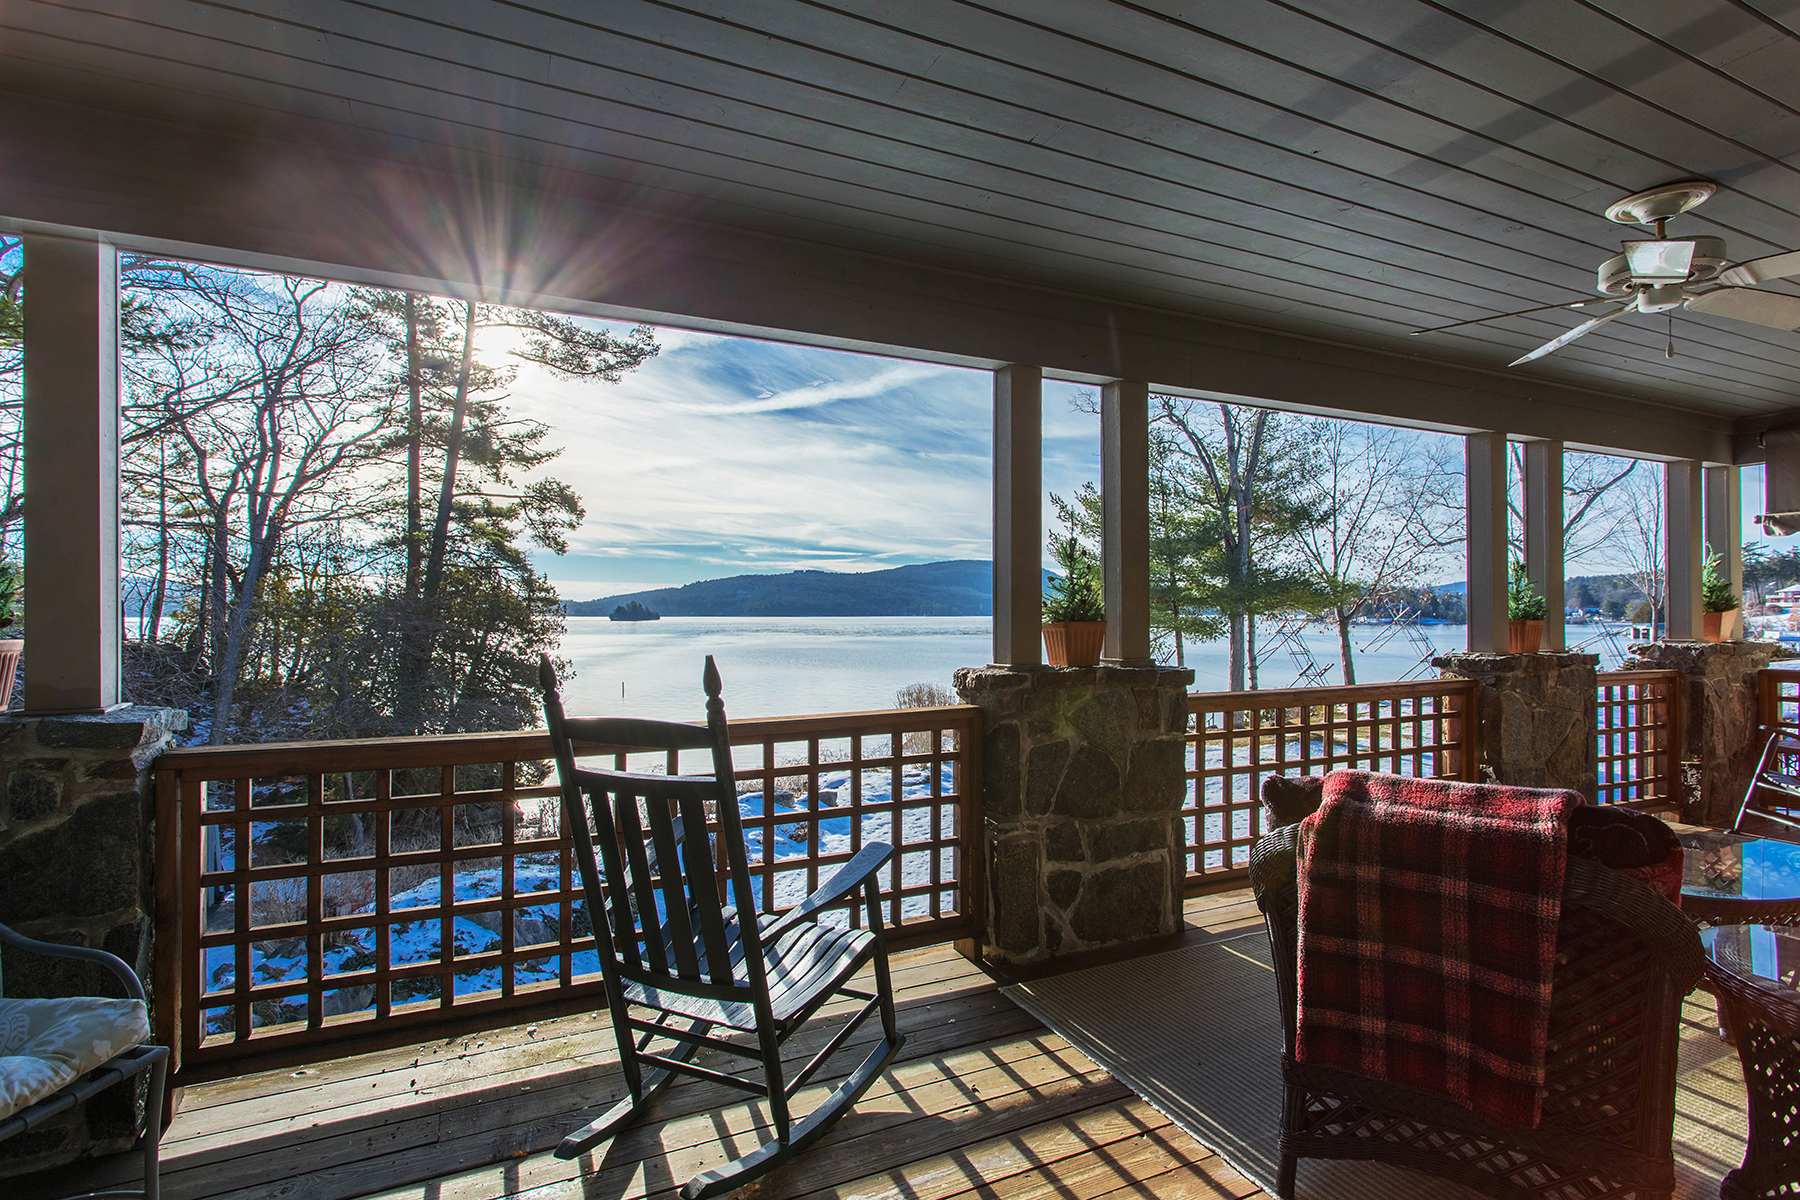 Townhouse for Sale at End-Unit Lake George Condo in The Antlers 84 Antlers Rd Lake George, New York 12845 United States